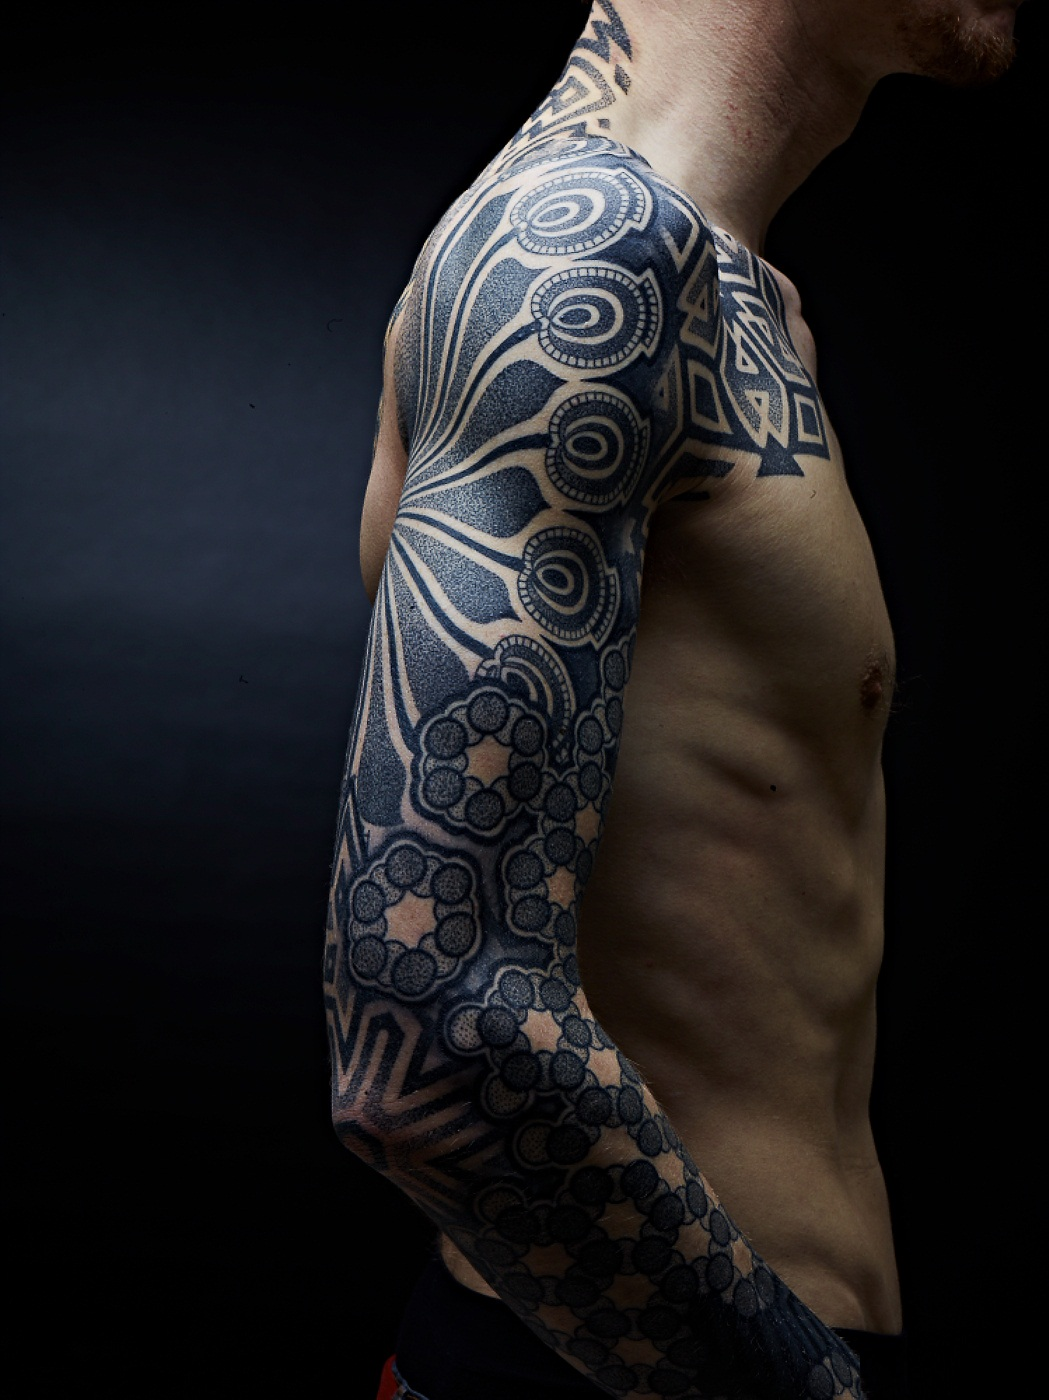 Best tattoo designs for men in 2016 the xerxes for Tattoos ideas for men